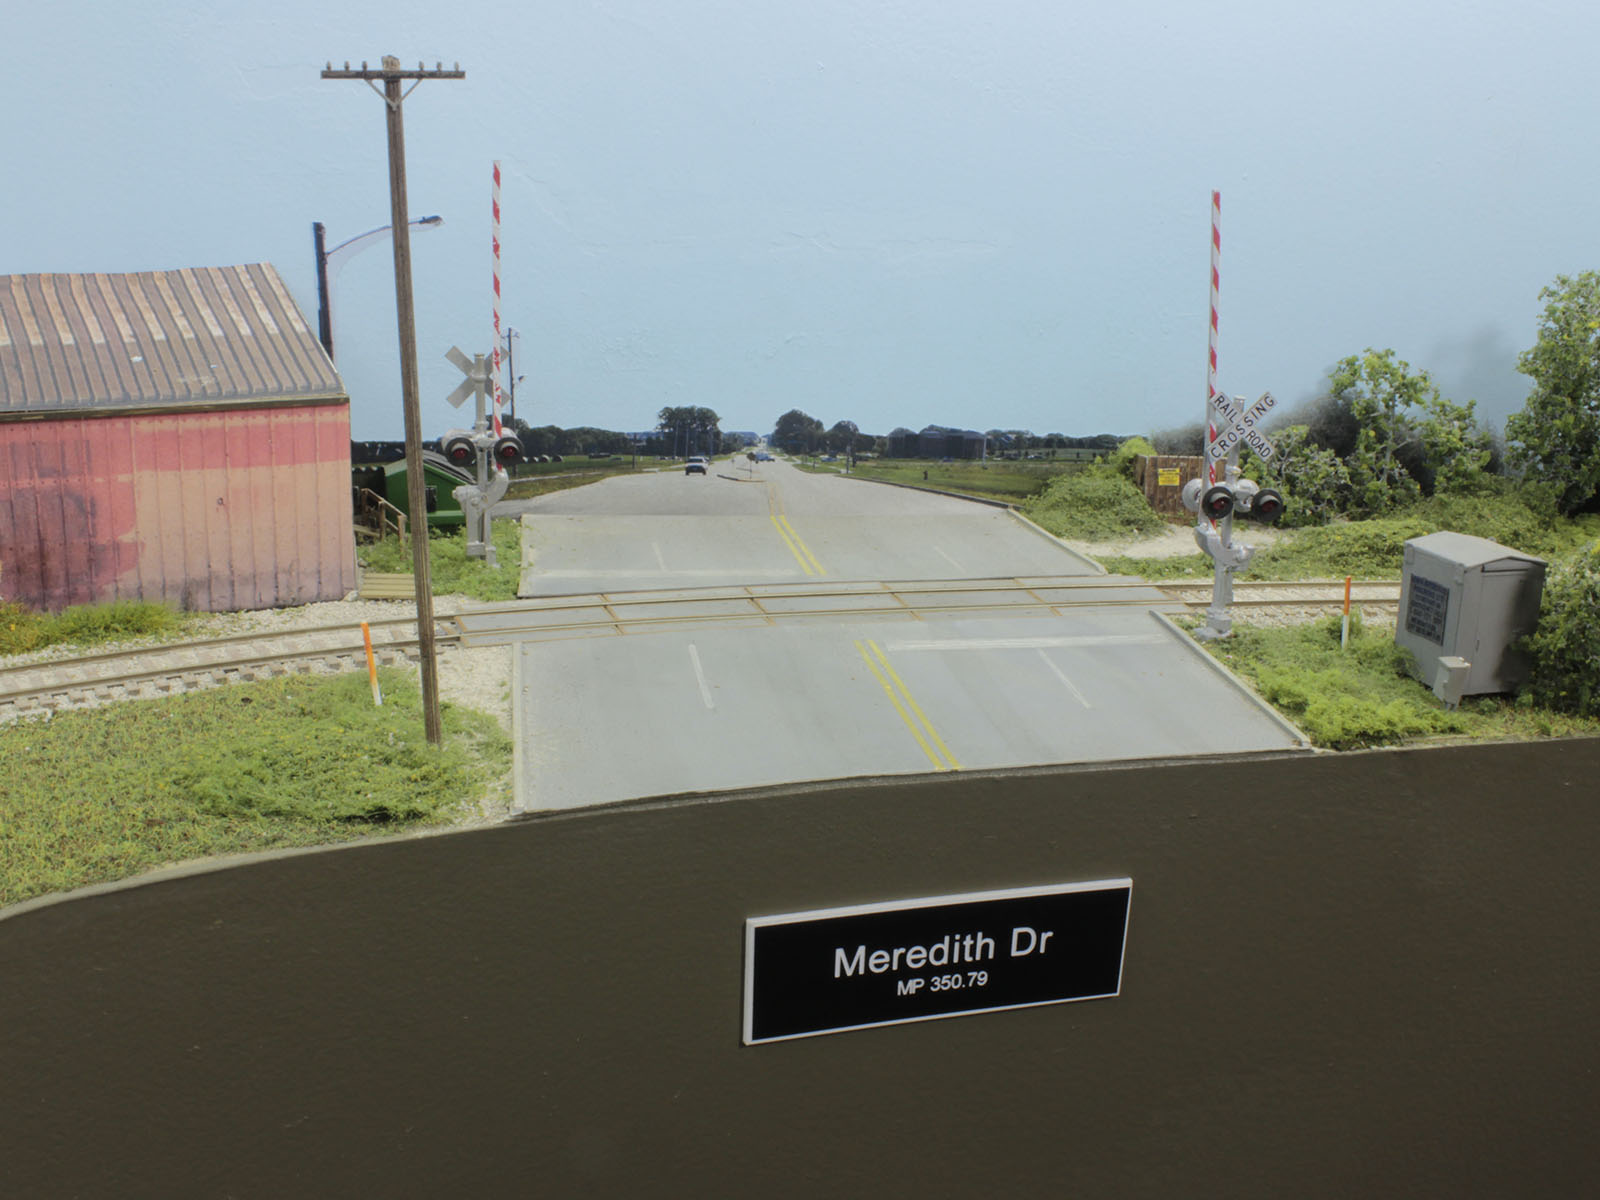 North of the Urbandale runaround, trains will shove across Meredith Drive enroute to Beisser Lumber. Meredith is the only grade crossing with gates for protection. Pallet Recyclers, a non rail-served industry, is located on the north side of the road.